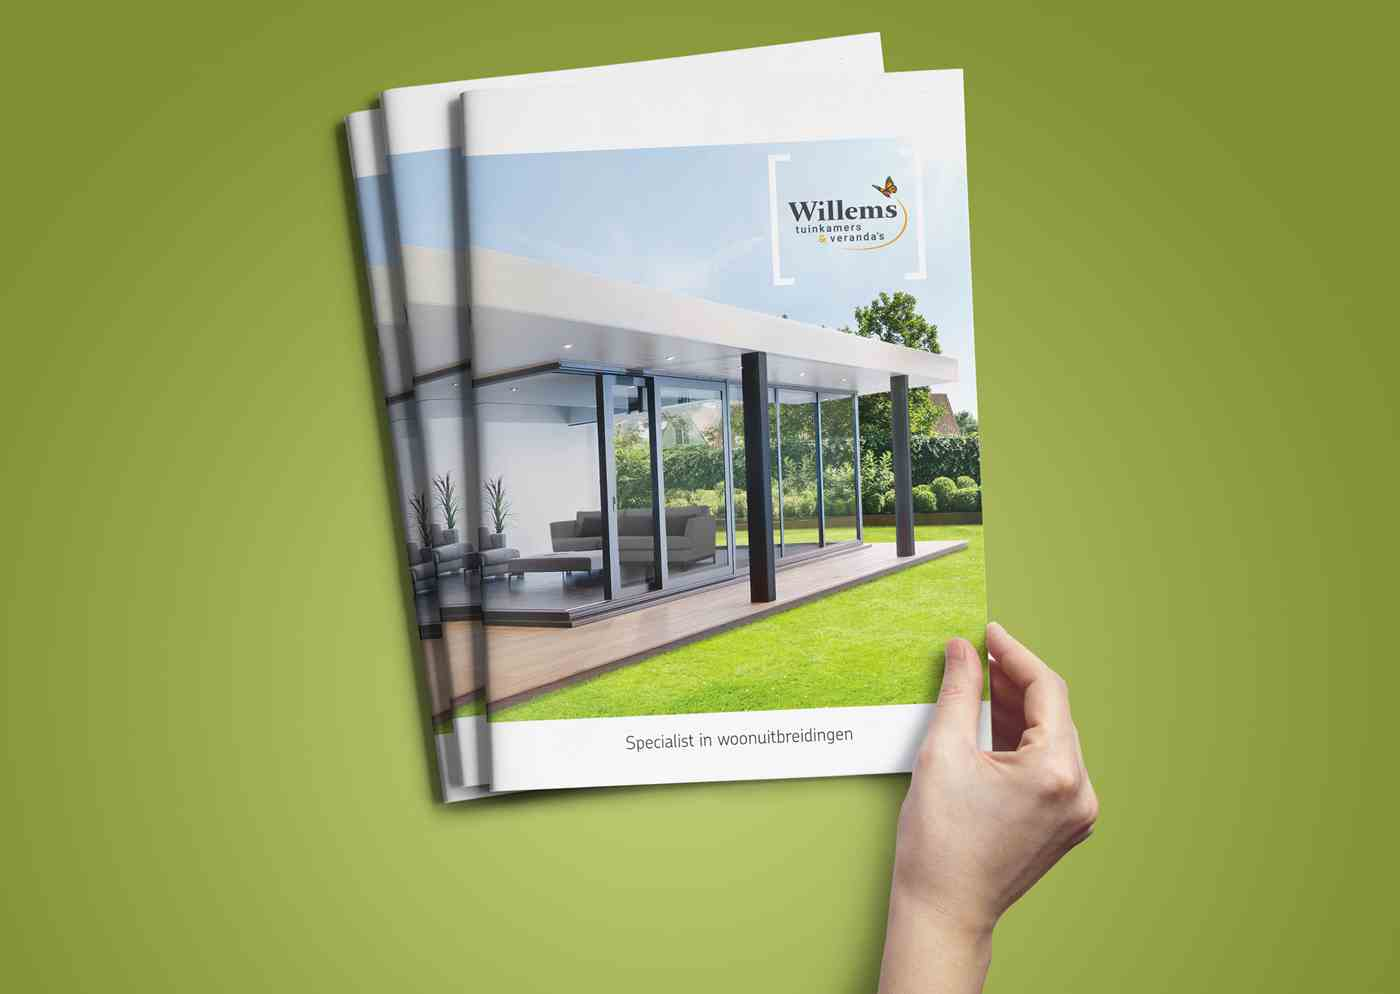 Willems tuinkamers & veranda's corporate brochure closed